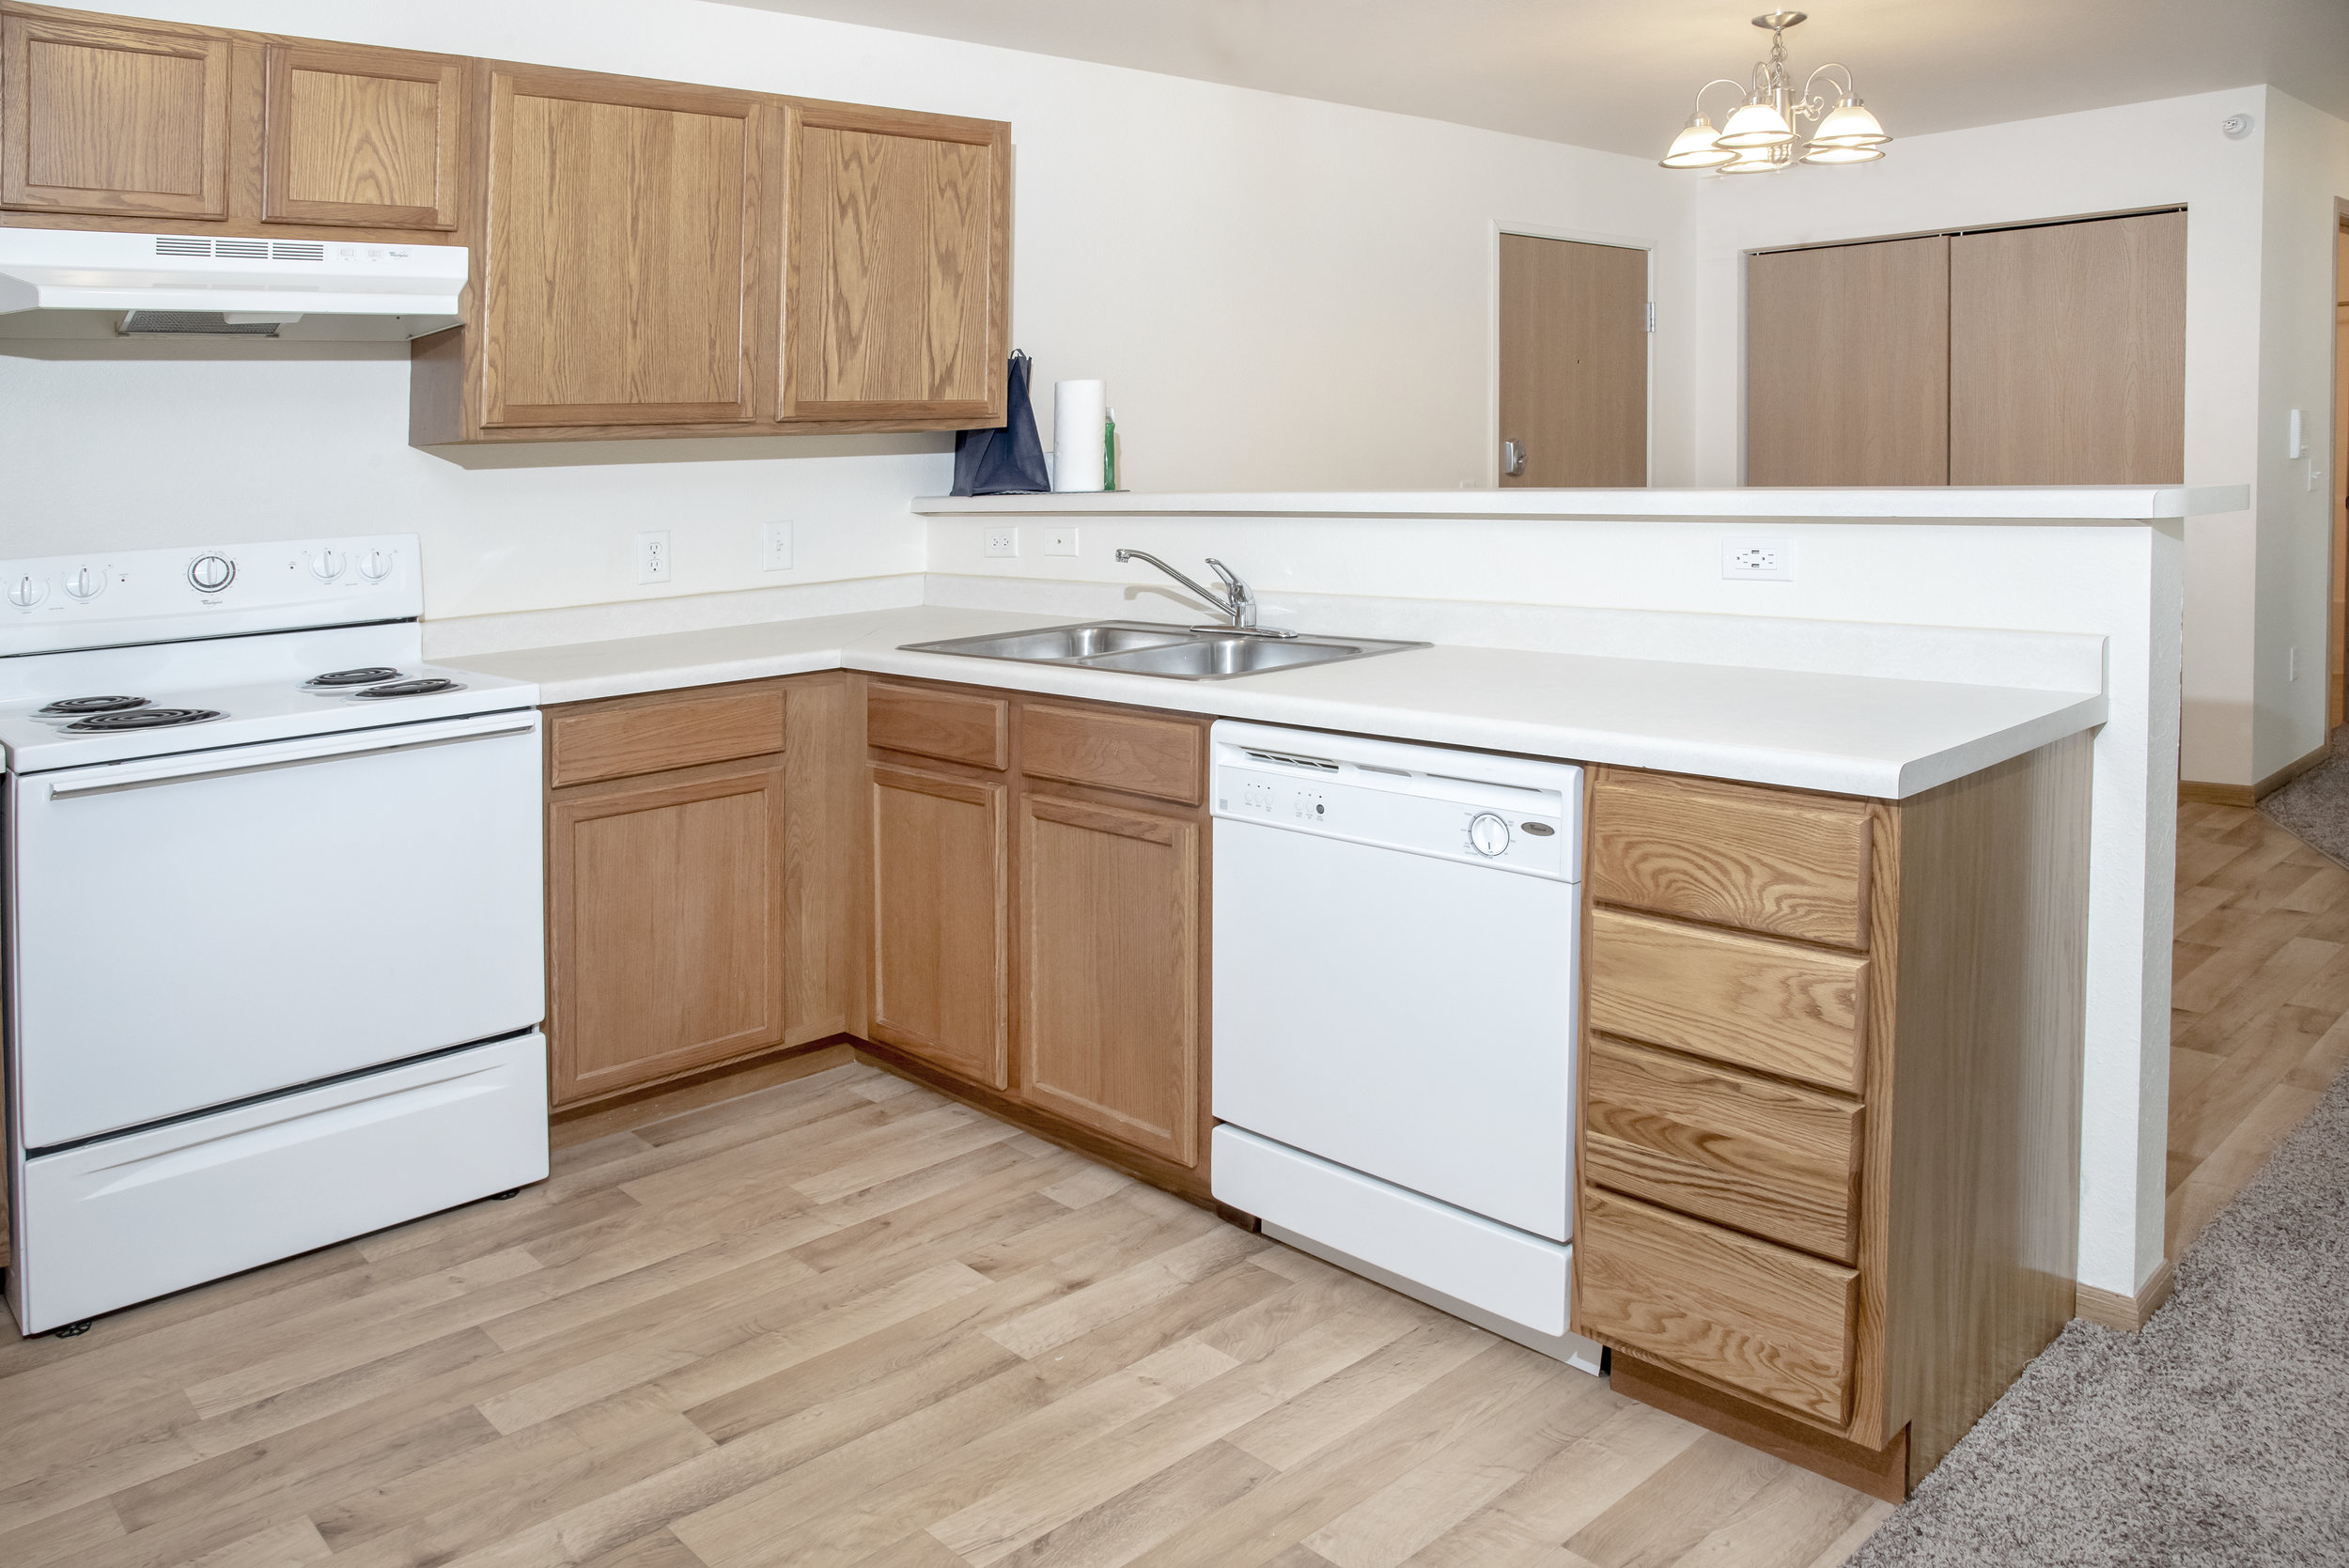 03-Updated Kitchens with Faux Wood Flooring and Laminate Countertops.jpg